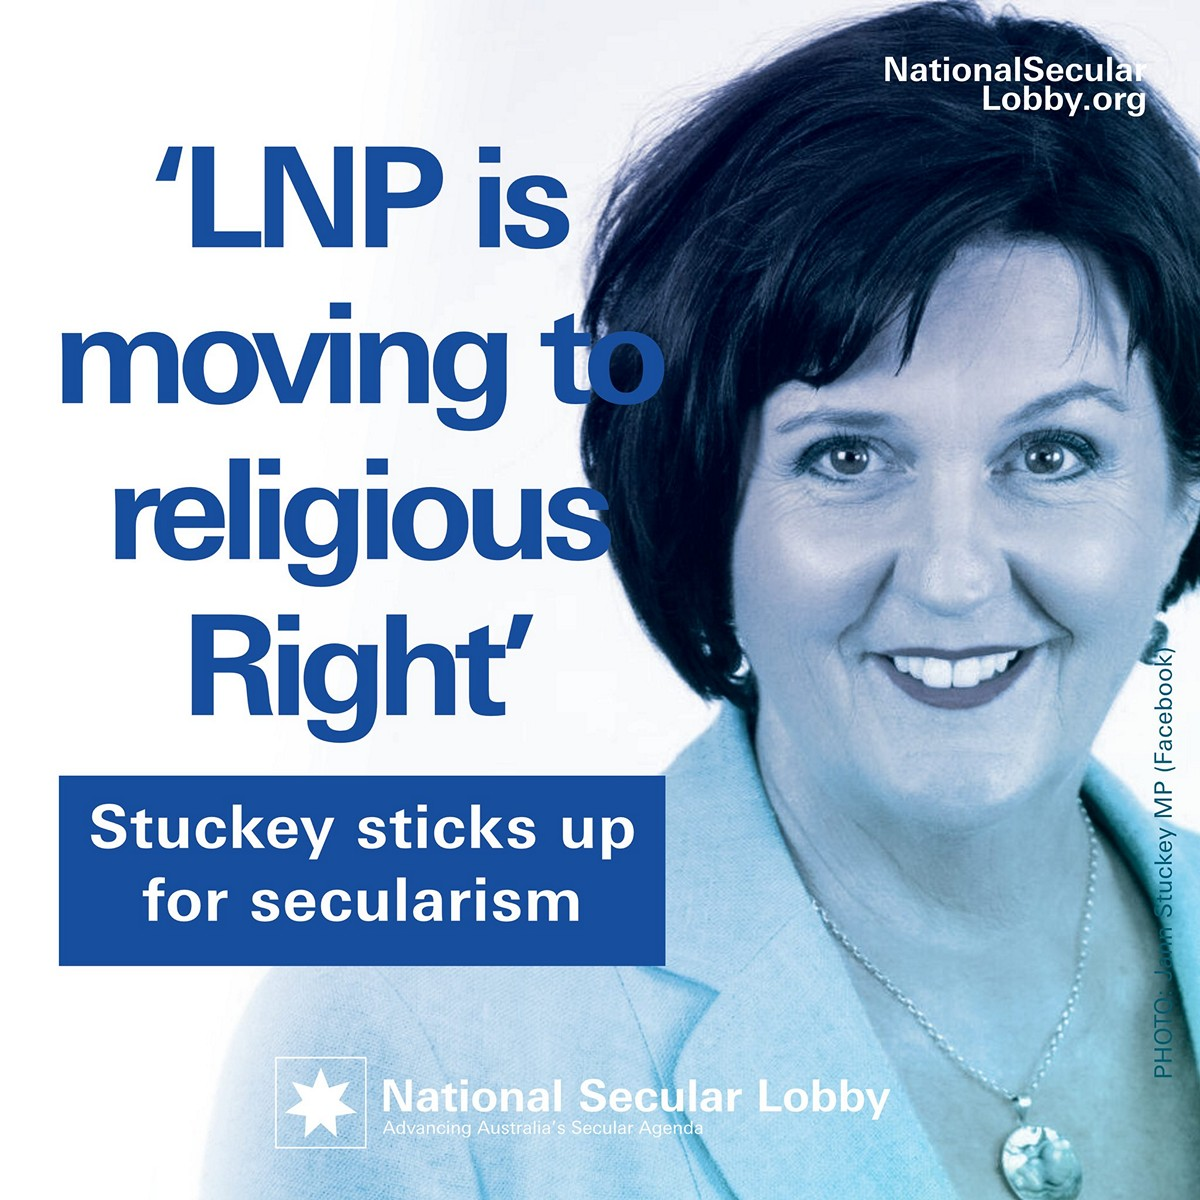 jann-stuckey-lnp-religious-right-square